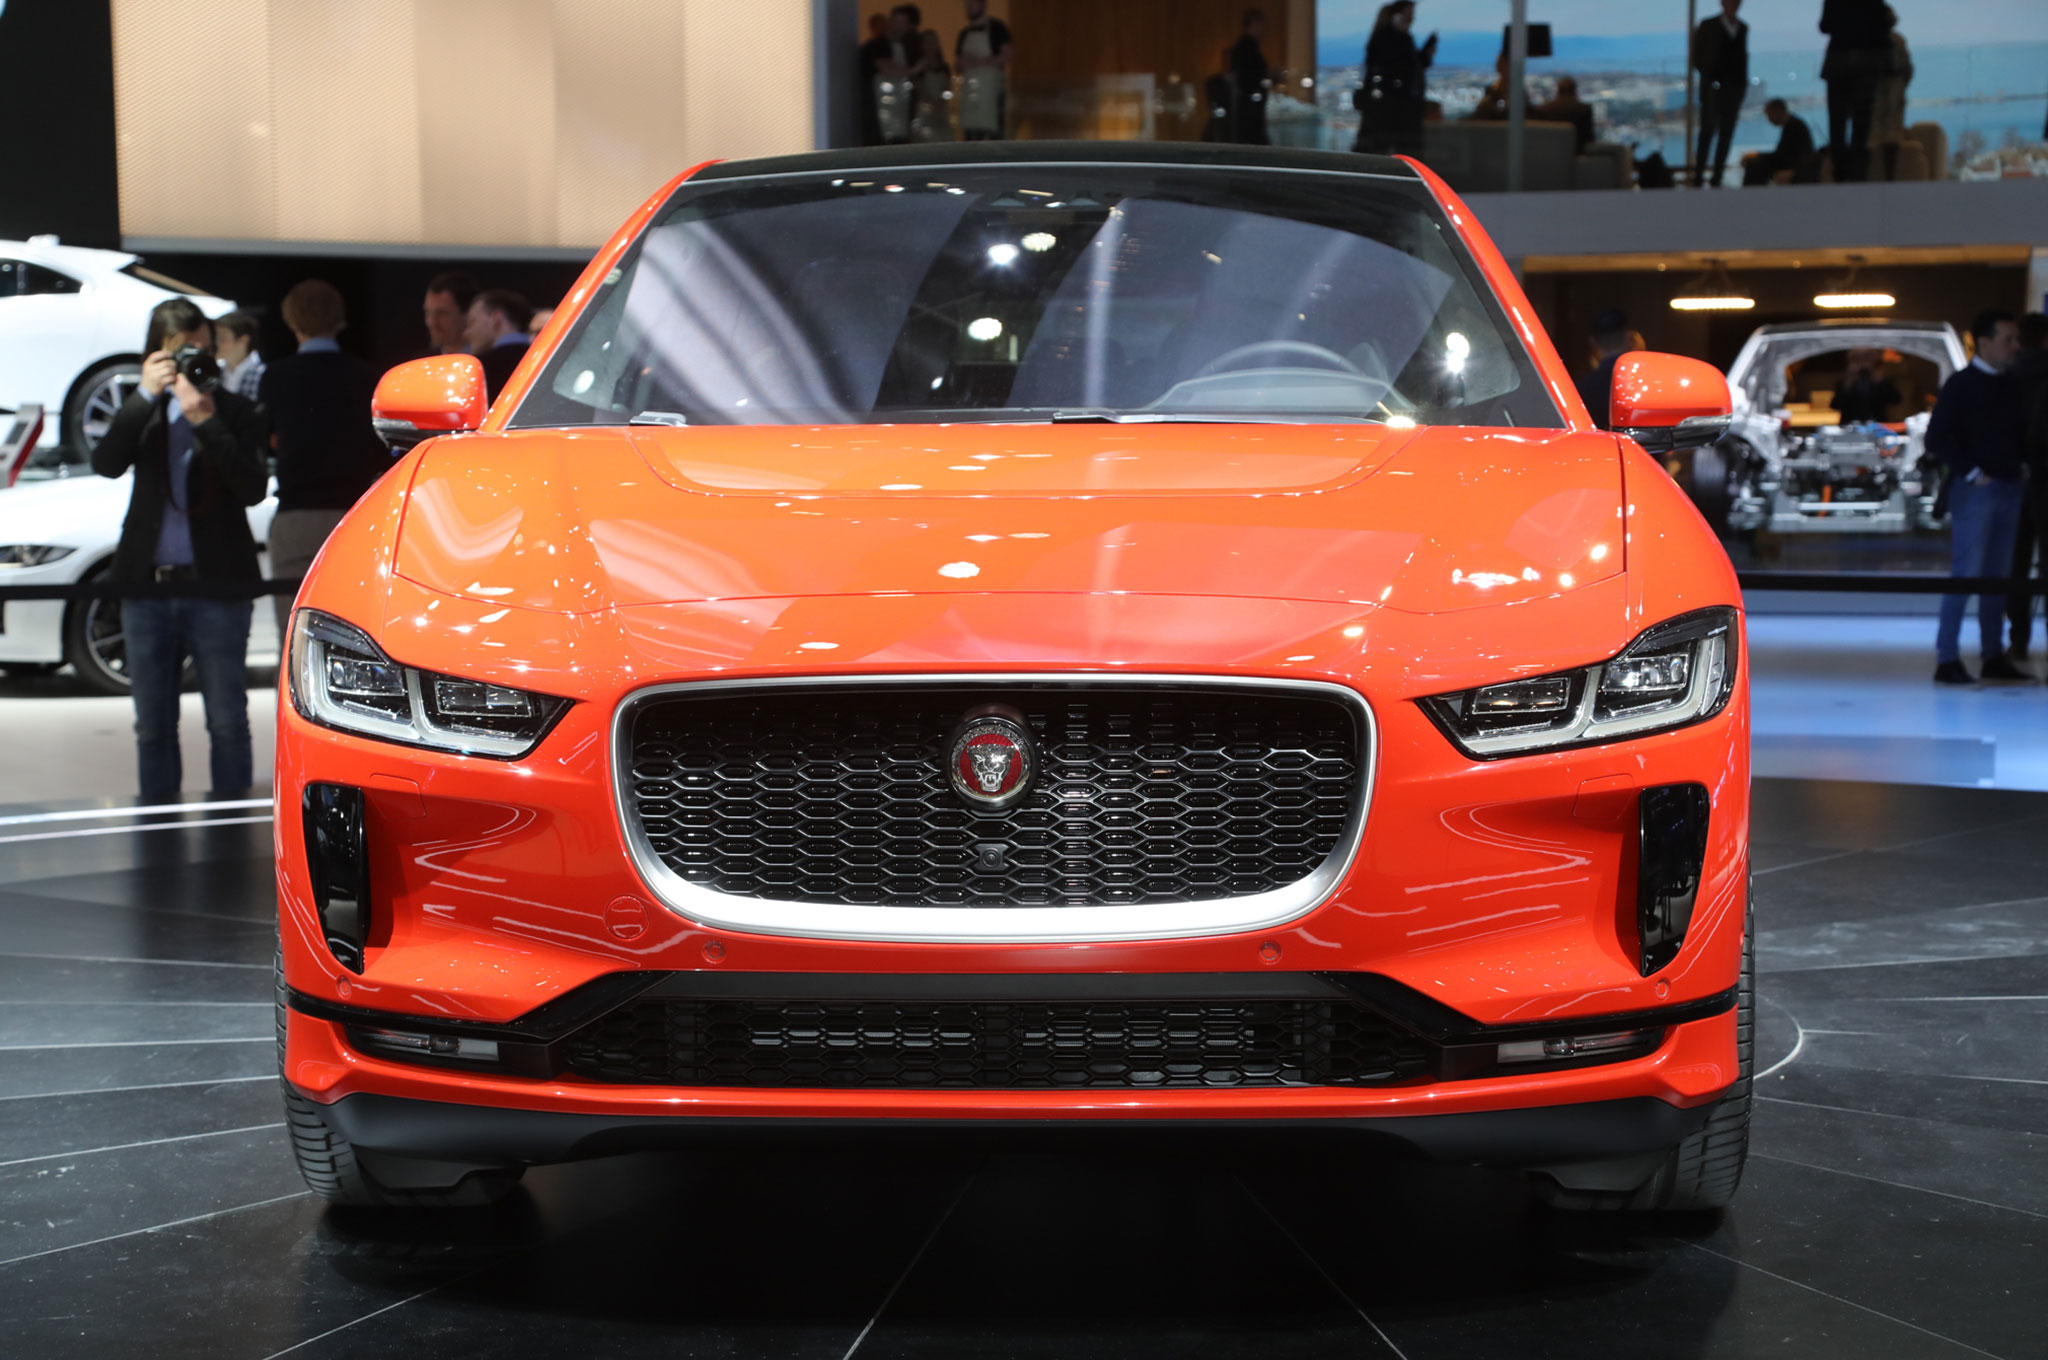 All-Electric 2019 Jaguar I-Pace Launches with 240 Miles of Range, 394 HP | Automobile Magazine